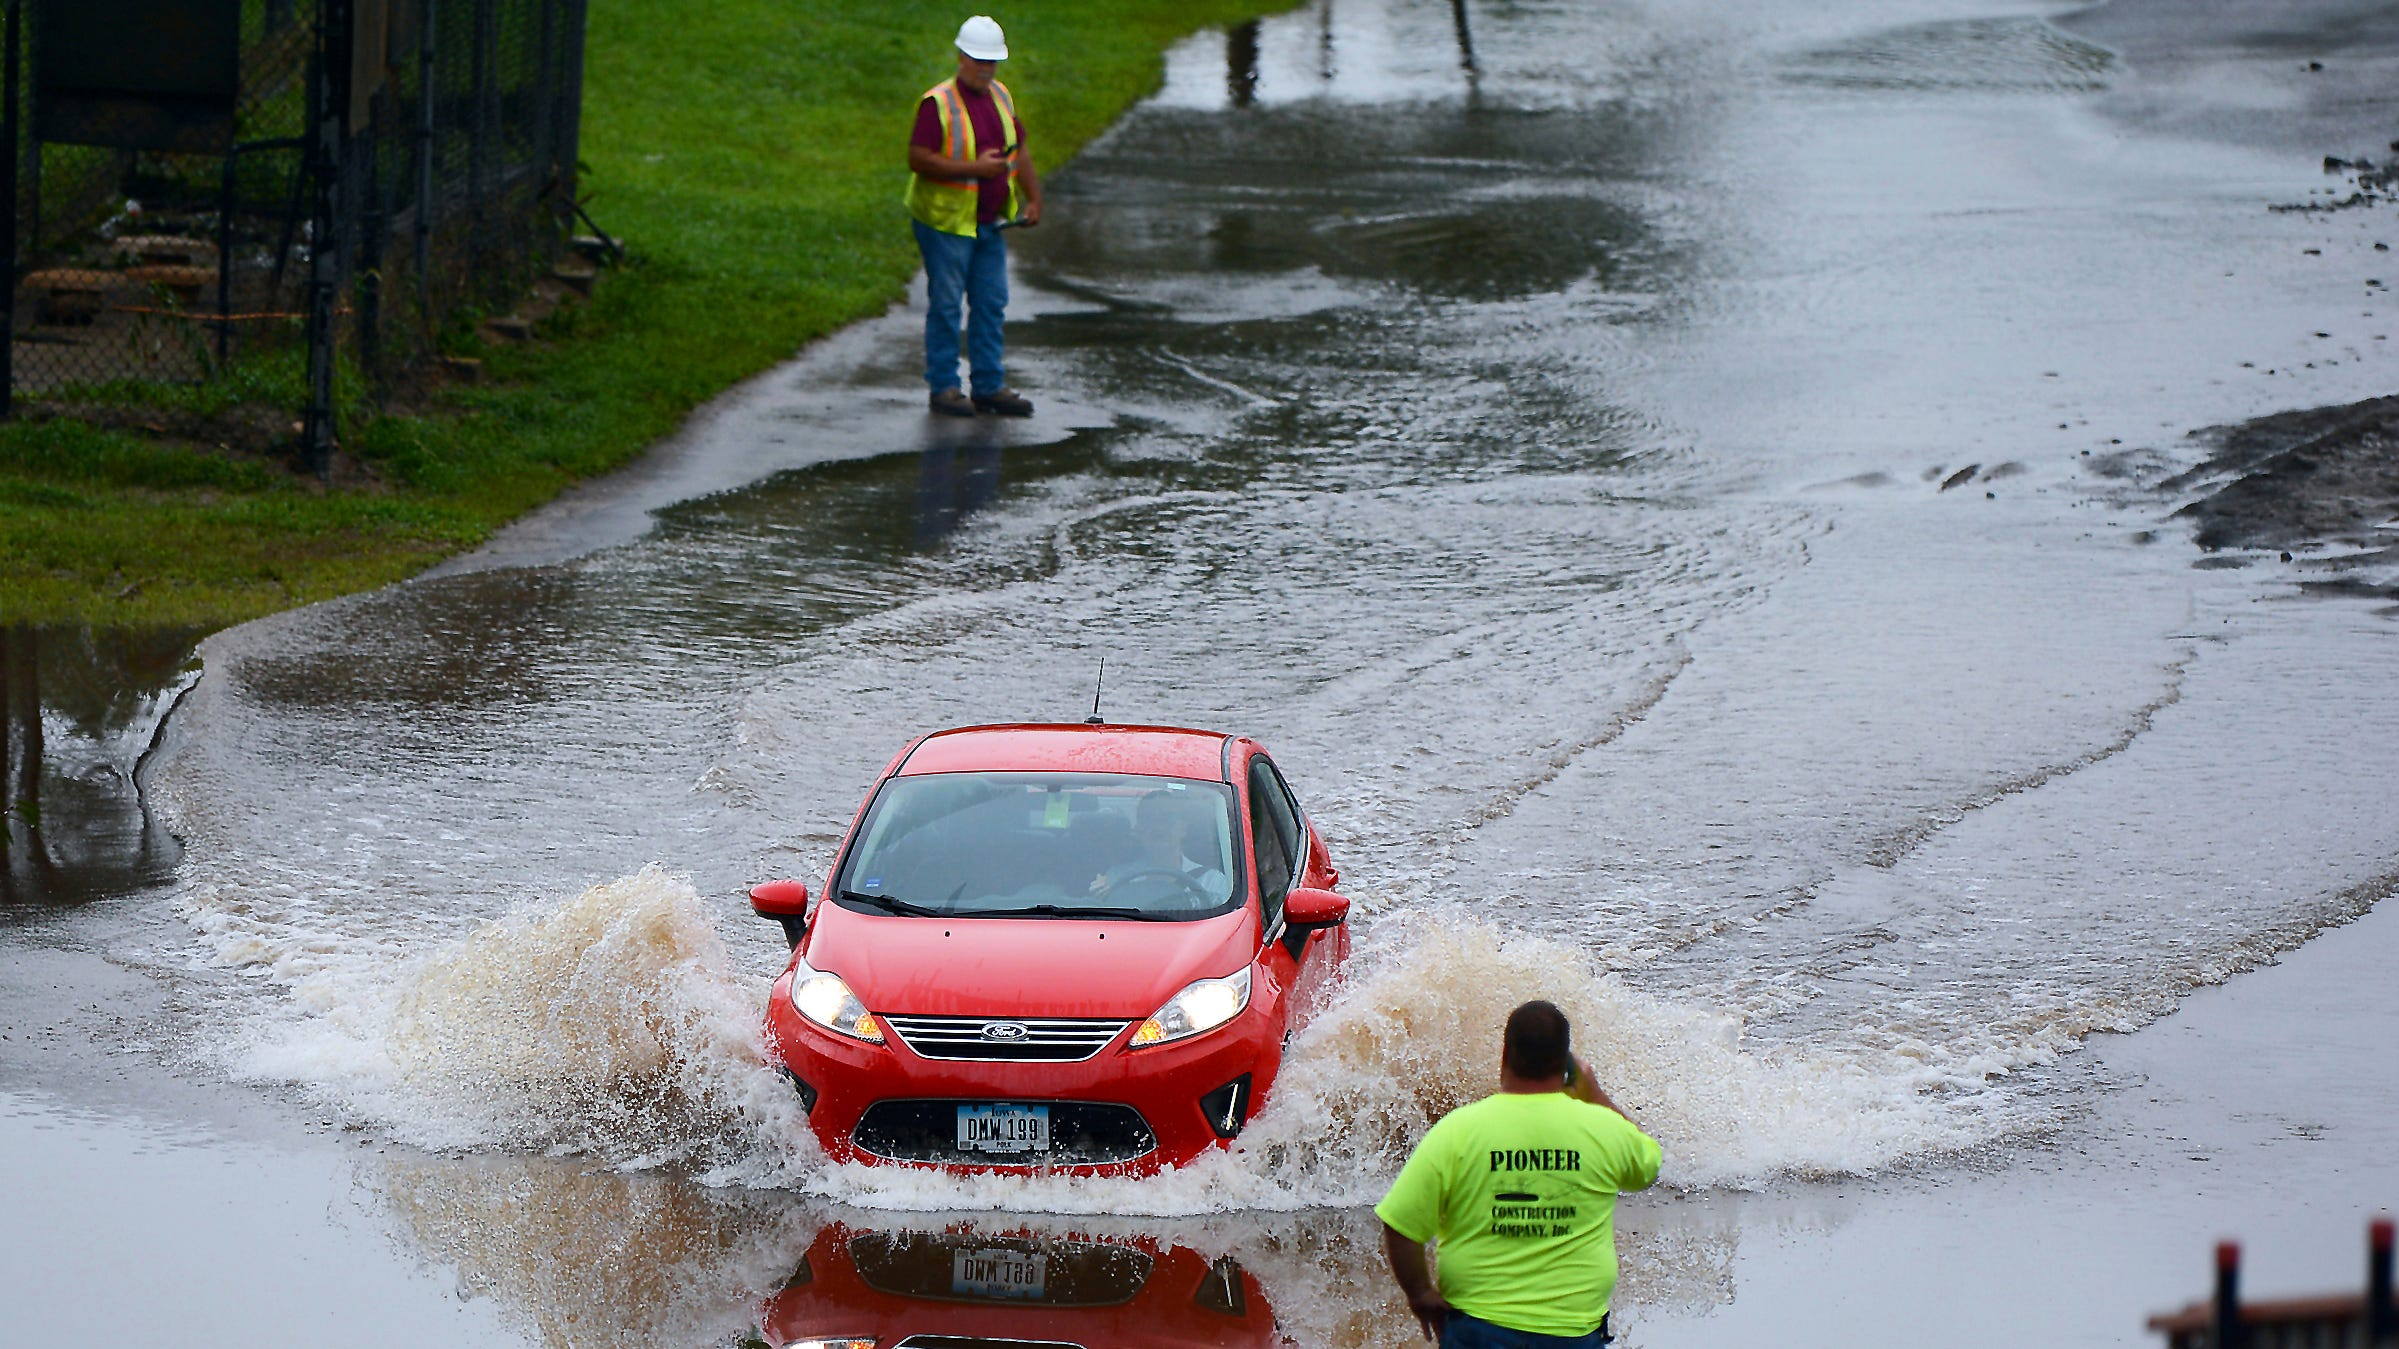 A motorist braves the flood waters on Richter Avenue in Scranton, Pa., on Tuesday, Aug. 14, 2018. Heavy rains overnight caused flooding in a wide swath of Pennsylvania on Monday, including areas soaked by a series of unusually heavy rains in recent weeks.